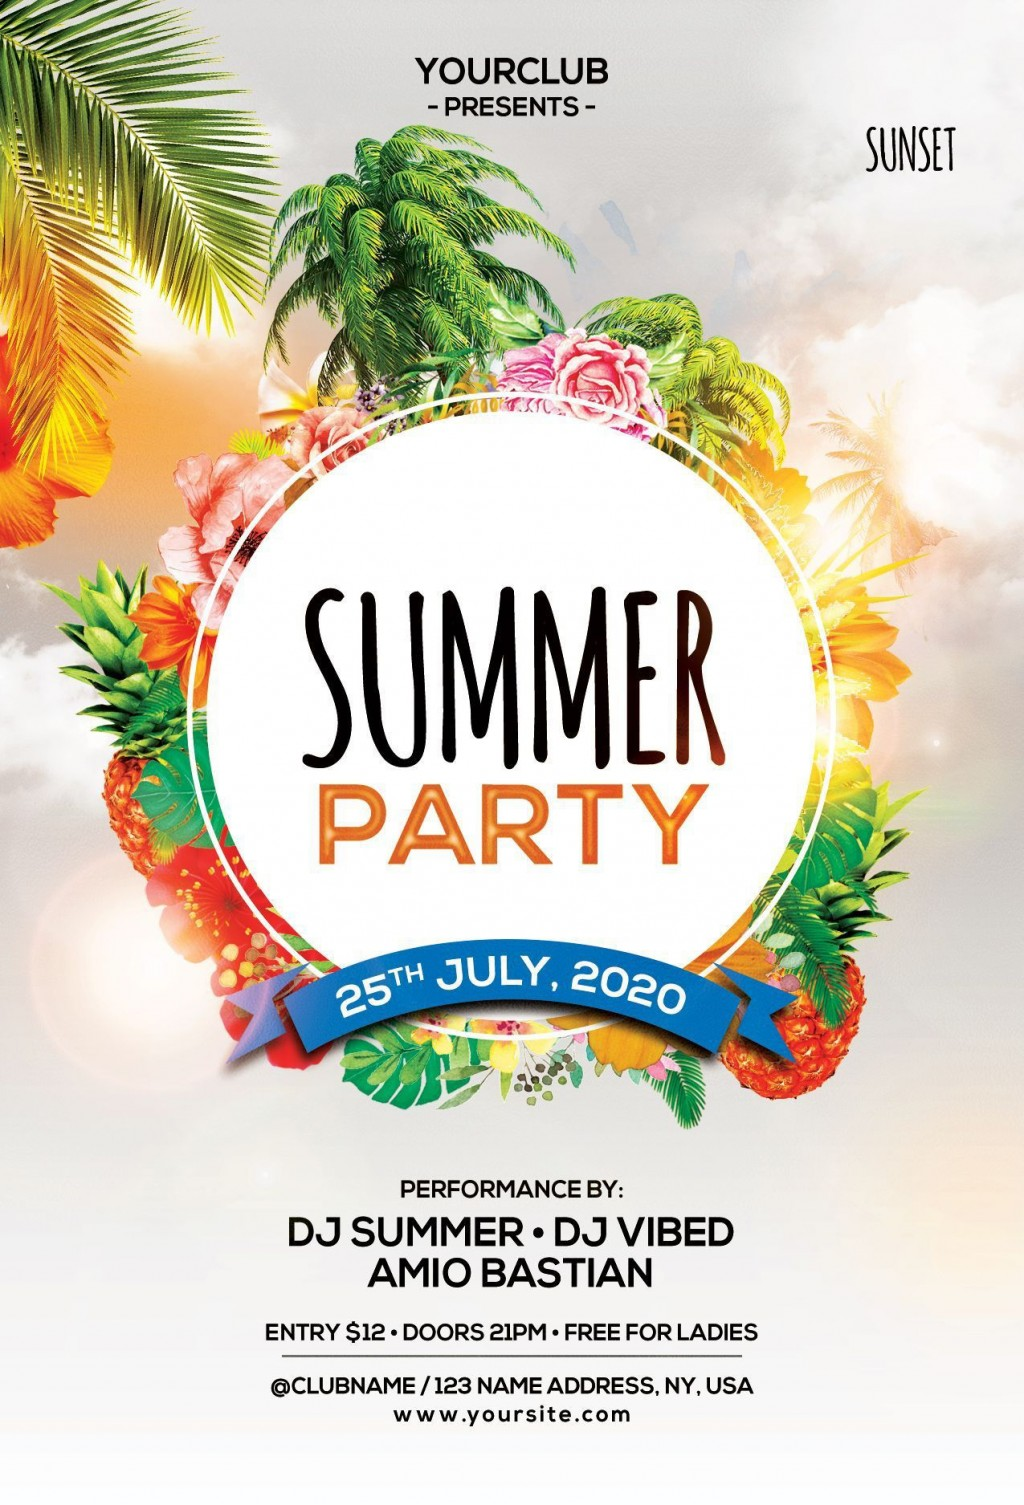 002 Wonderful Graduation Party Flyer Template Free Psd High Def Large